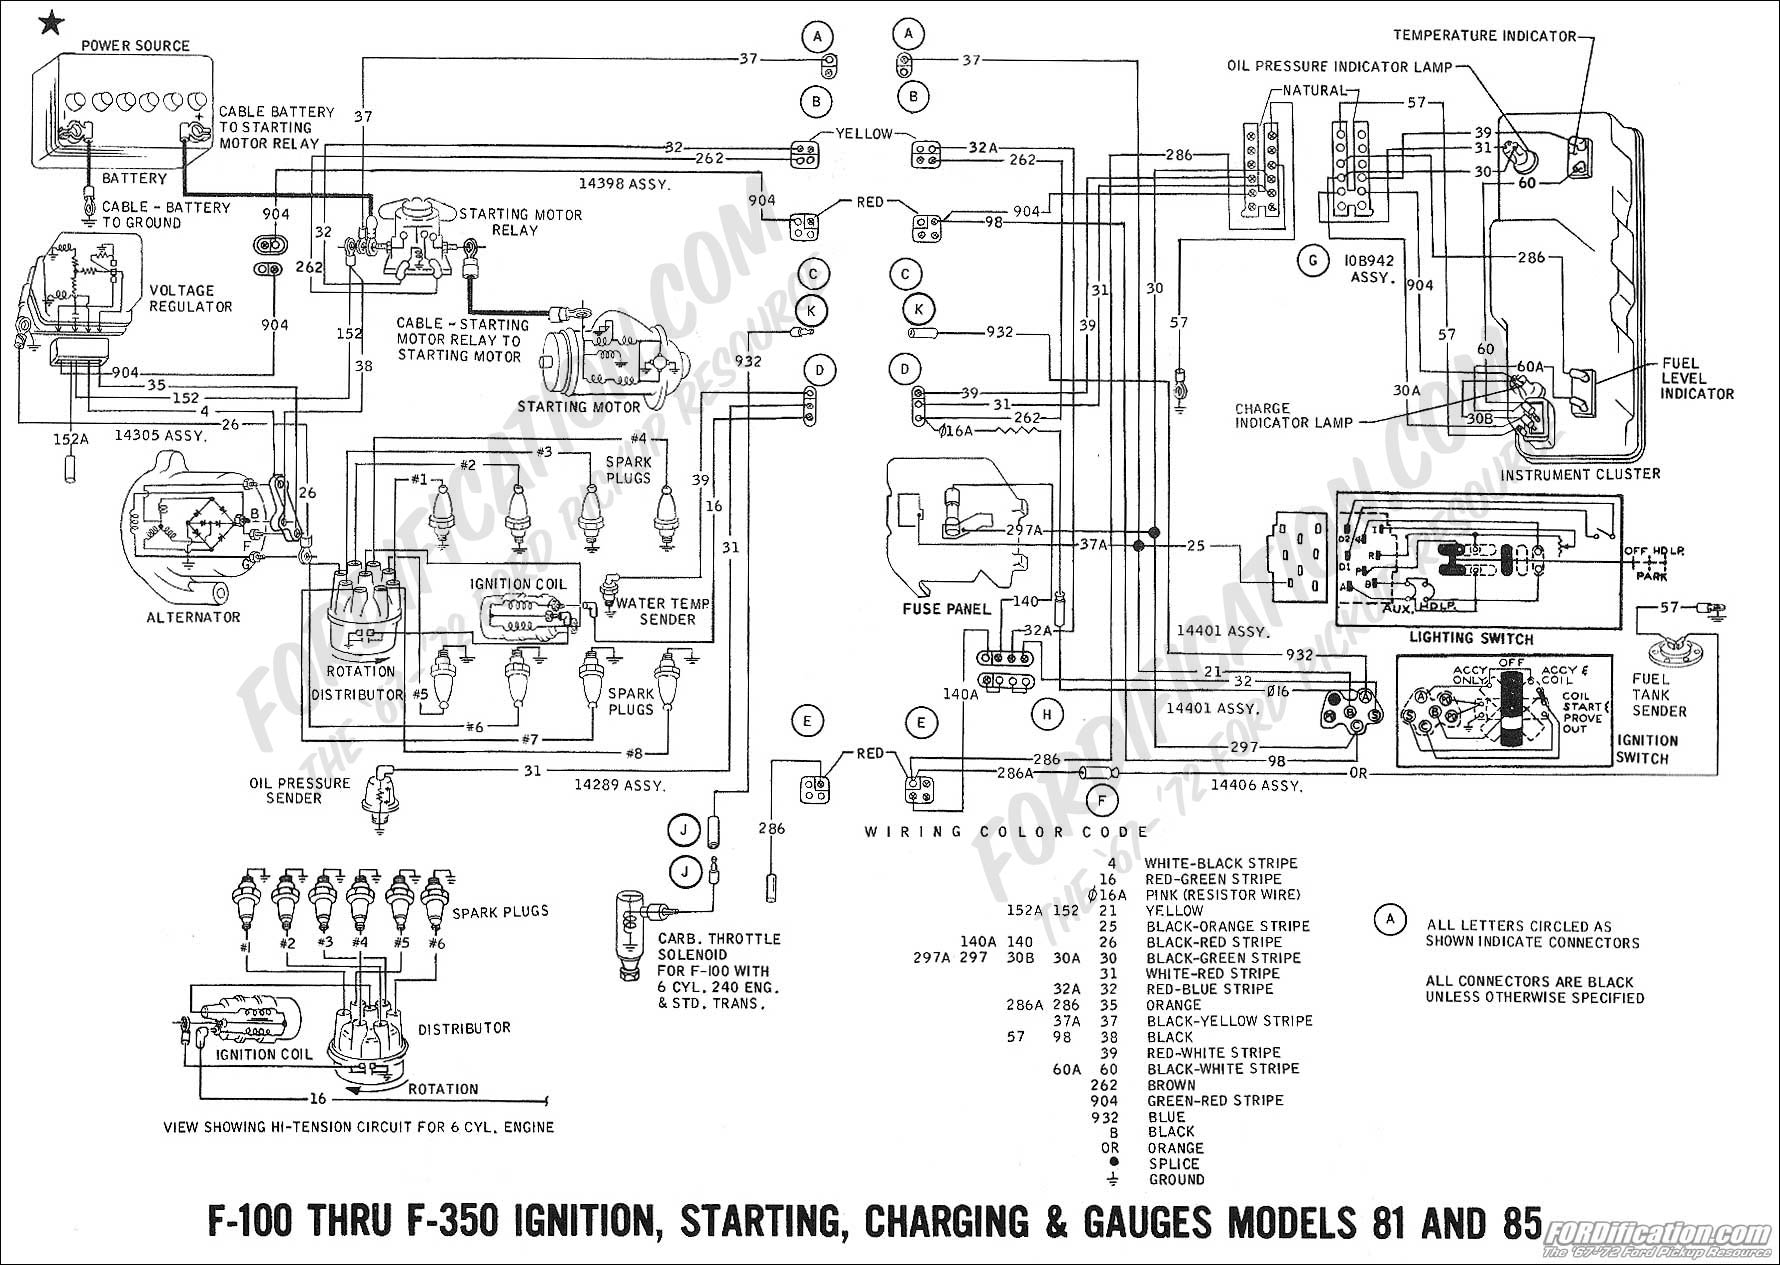 hight resolution of ford wiring harness diagrams 1967 bronco automotive wiring diagrams 2006 ford escape wiring harness 1970 ford